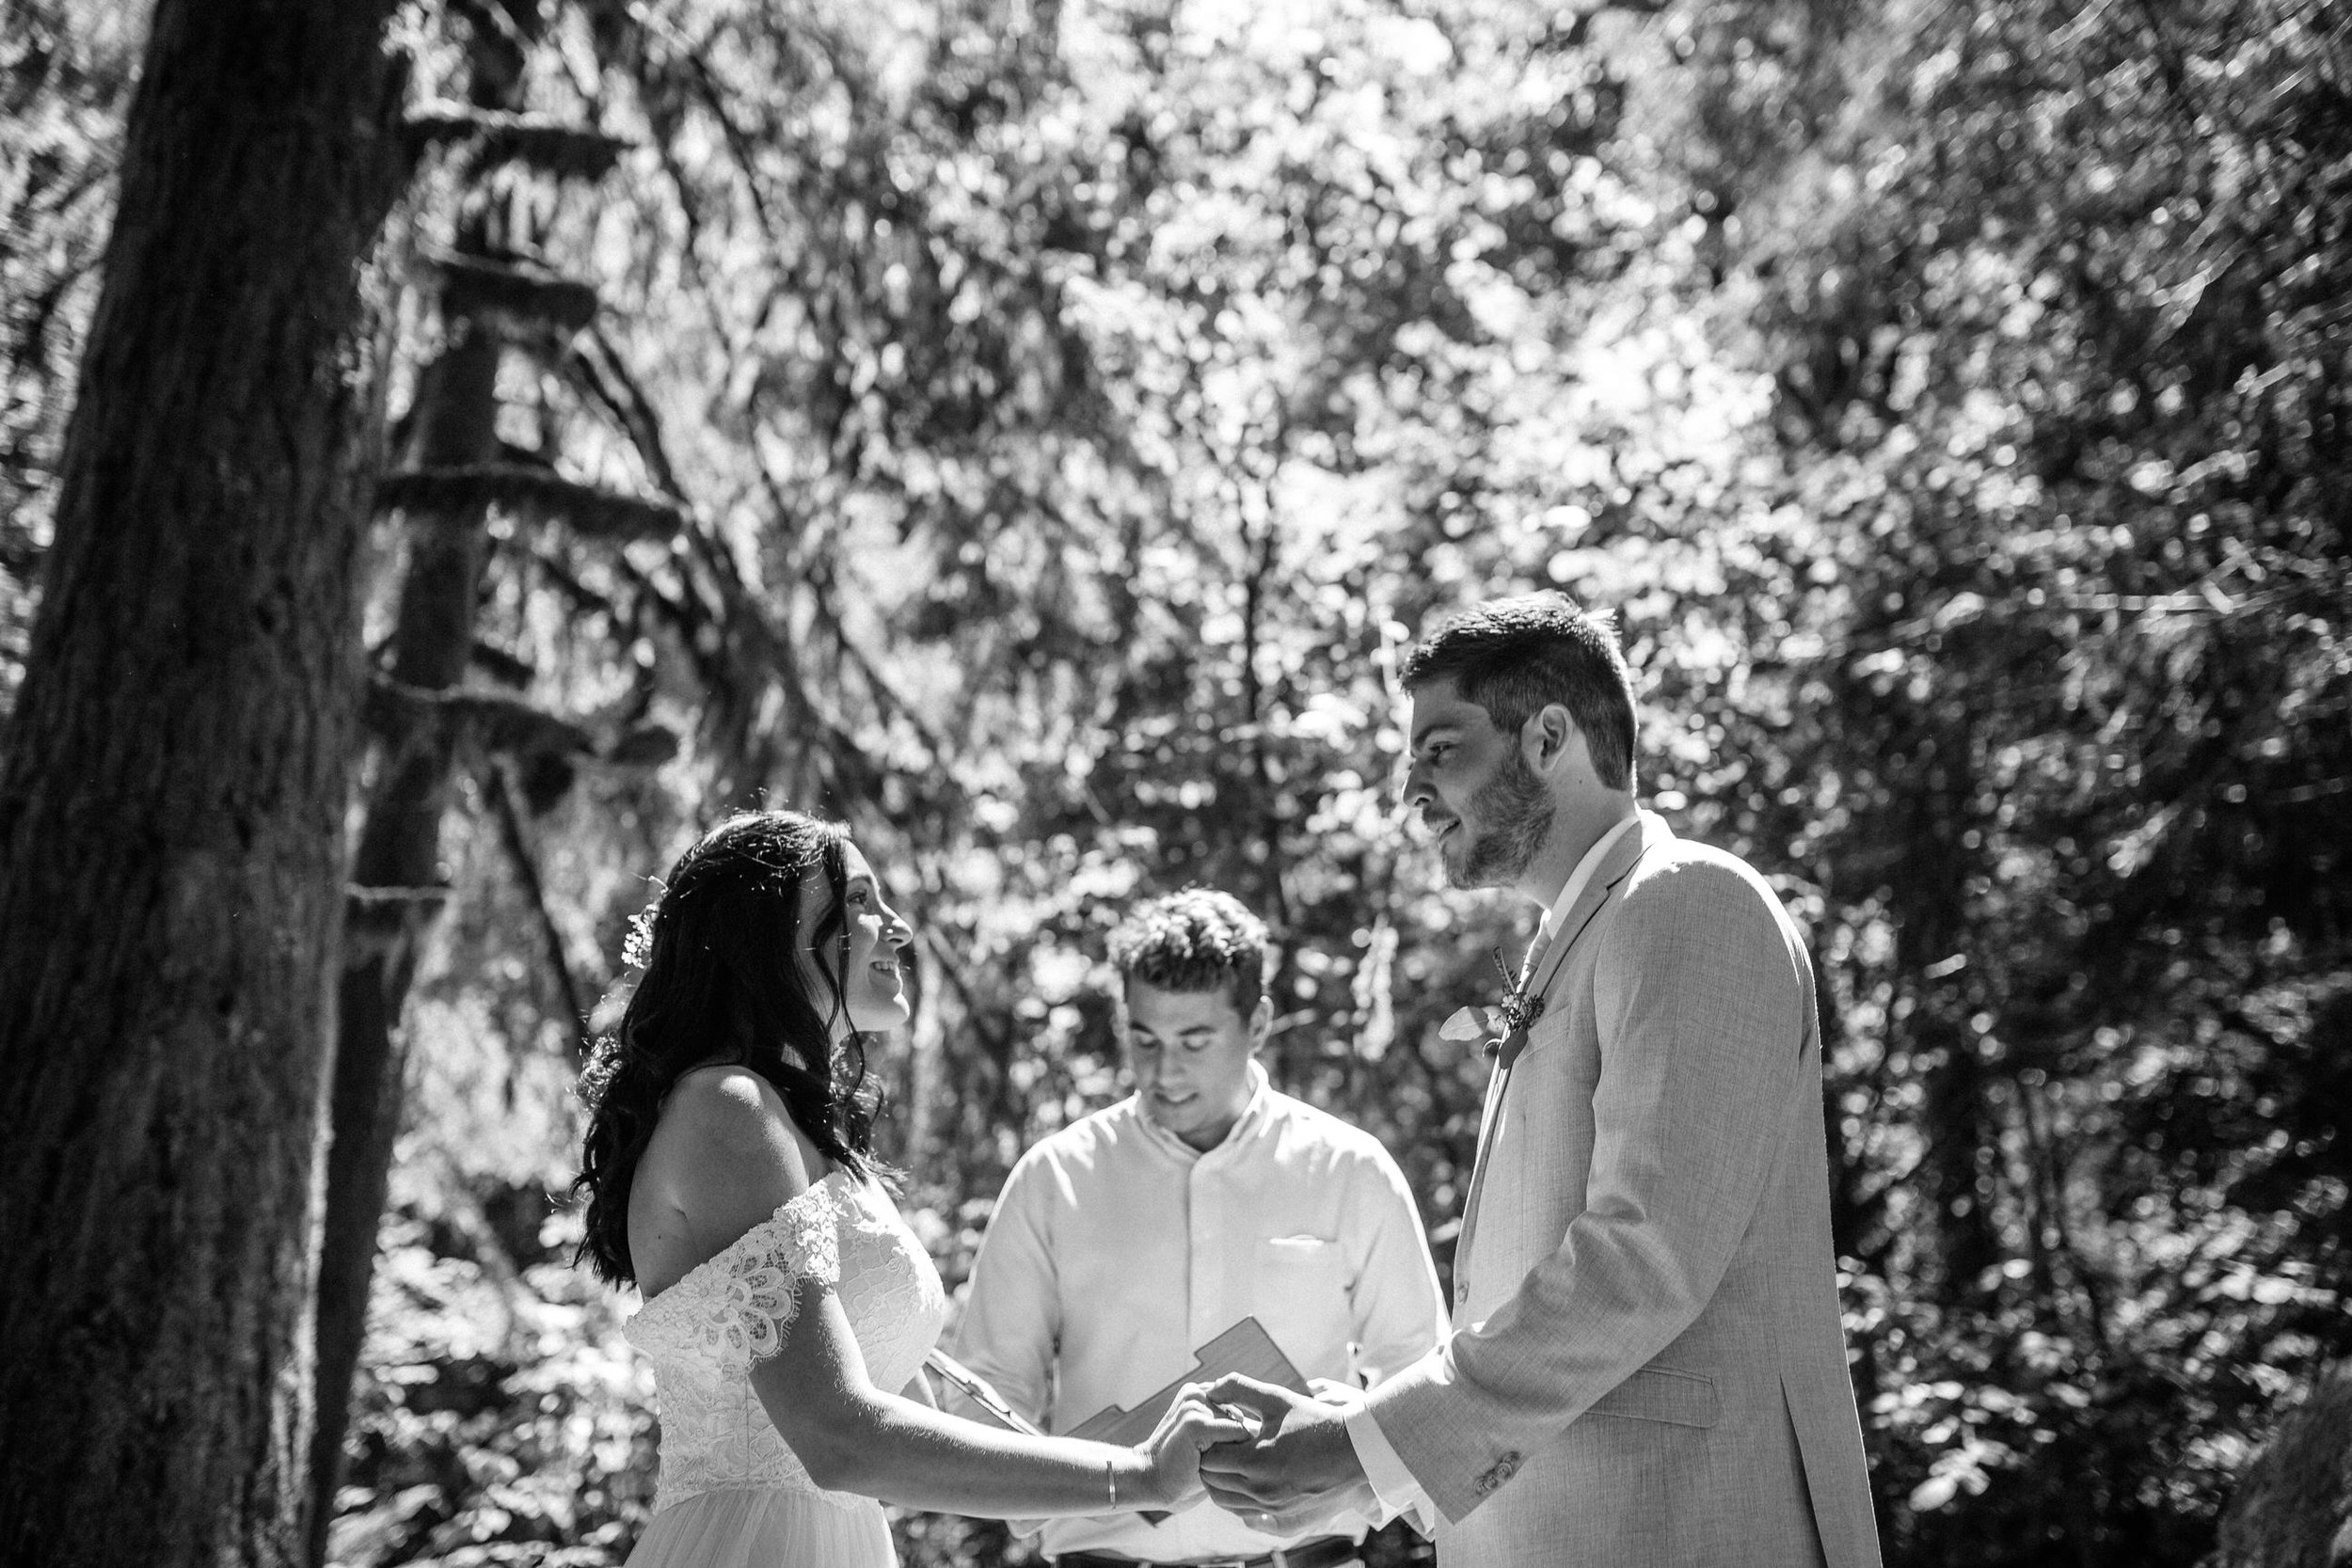 MT Hood Wildwood elopement wedding oregon portland photography0012.JPG